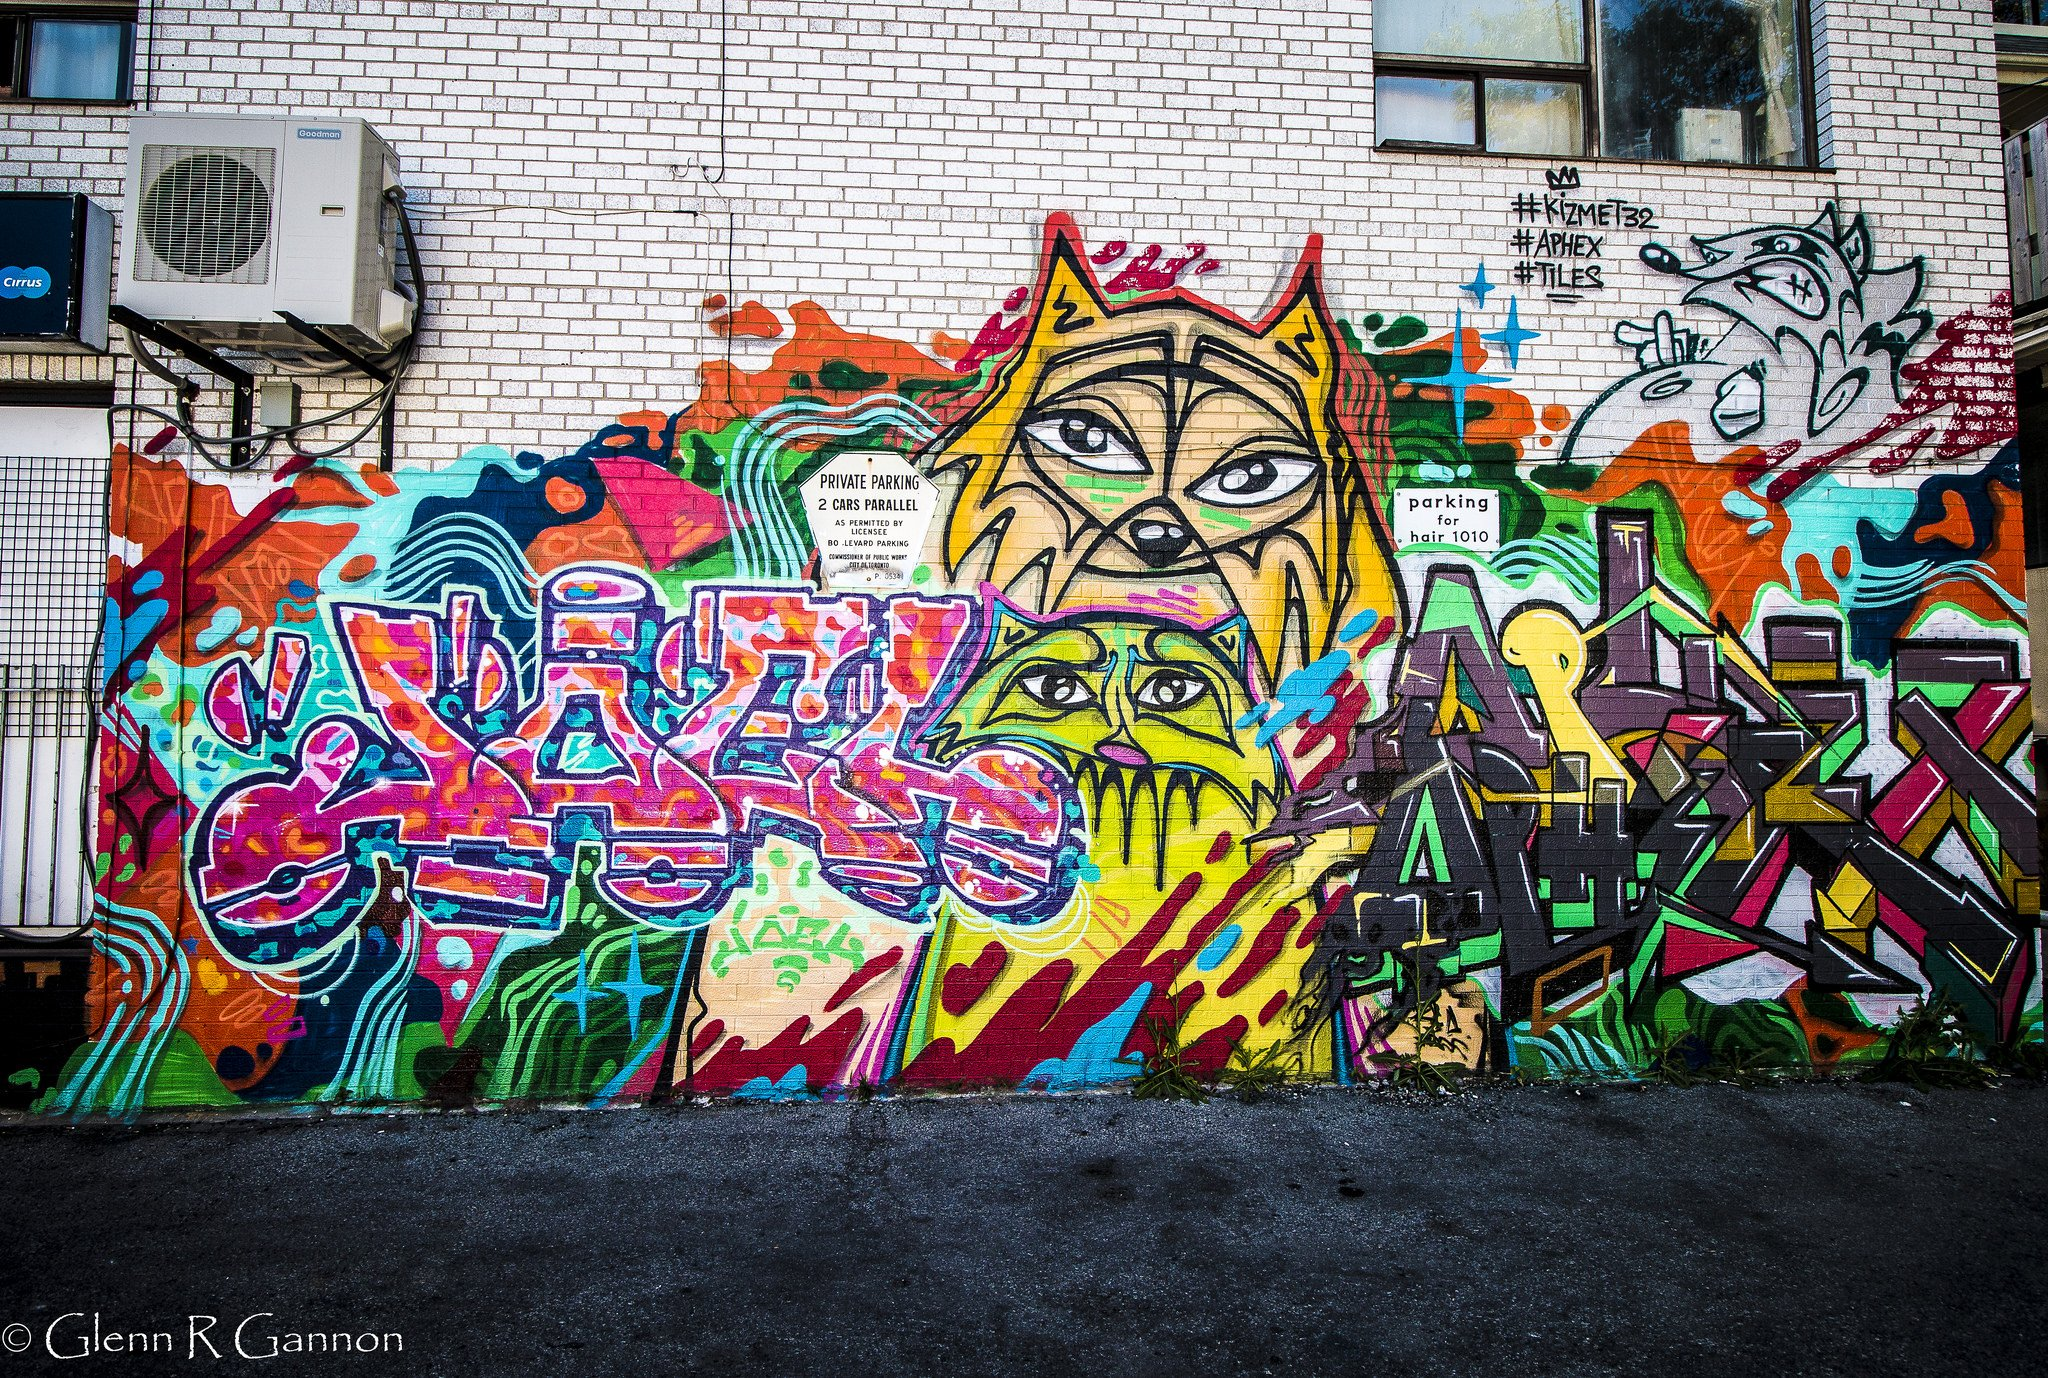 Graffiti HD Backgrounds (41 Wallpapers) – Adorable Wallpapers